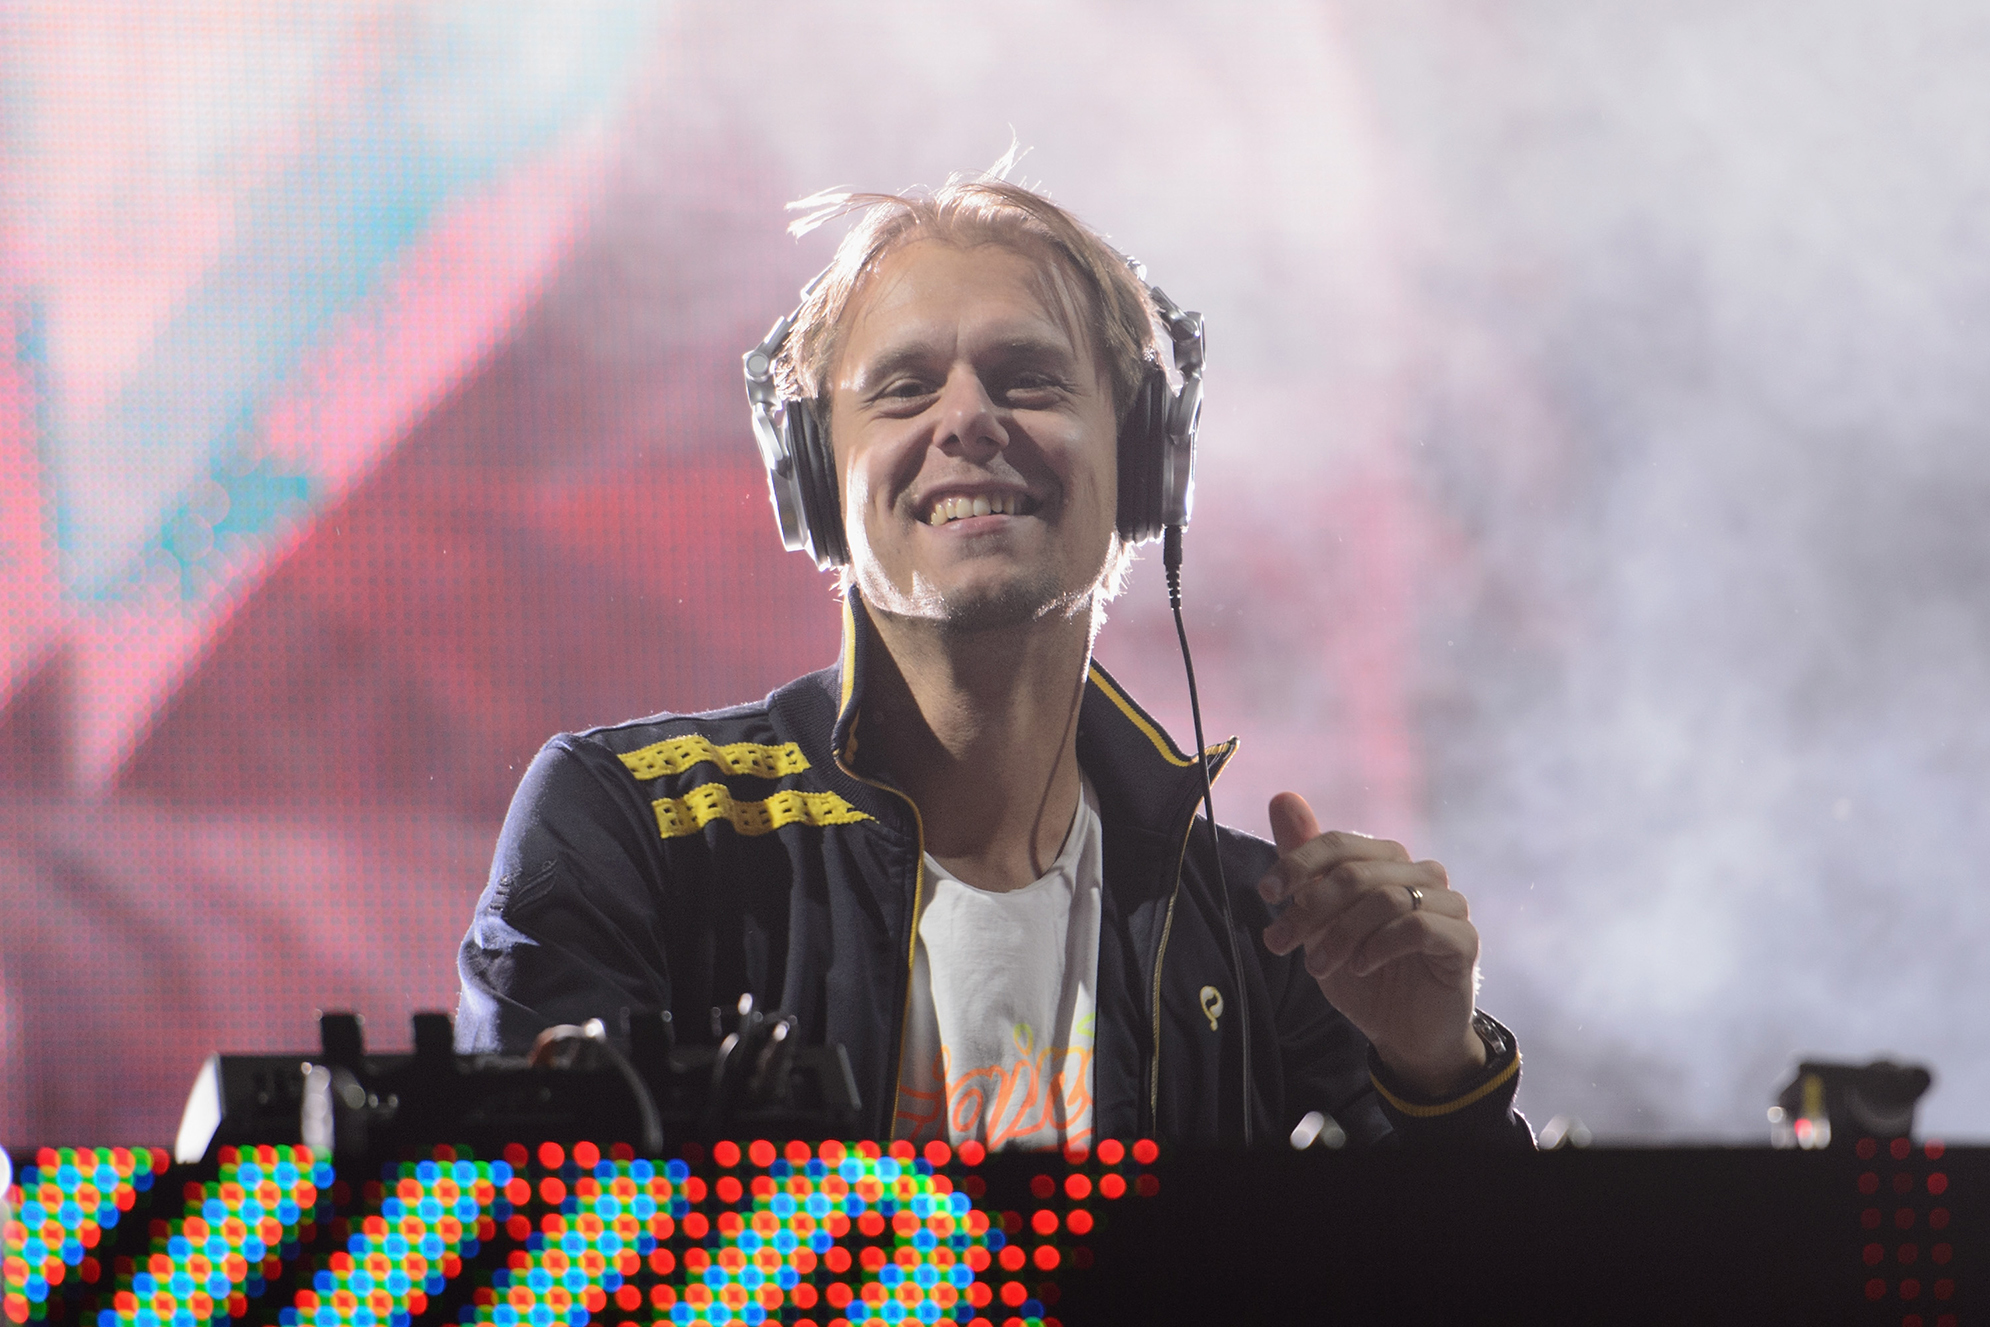 Armin Van Buuren Hd Wallpaper